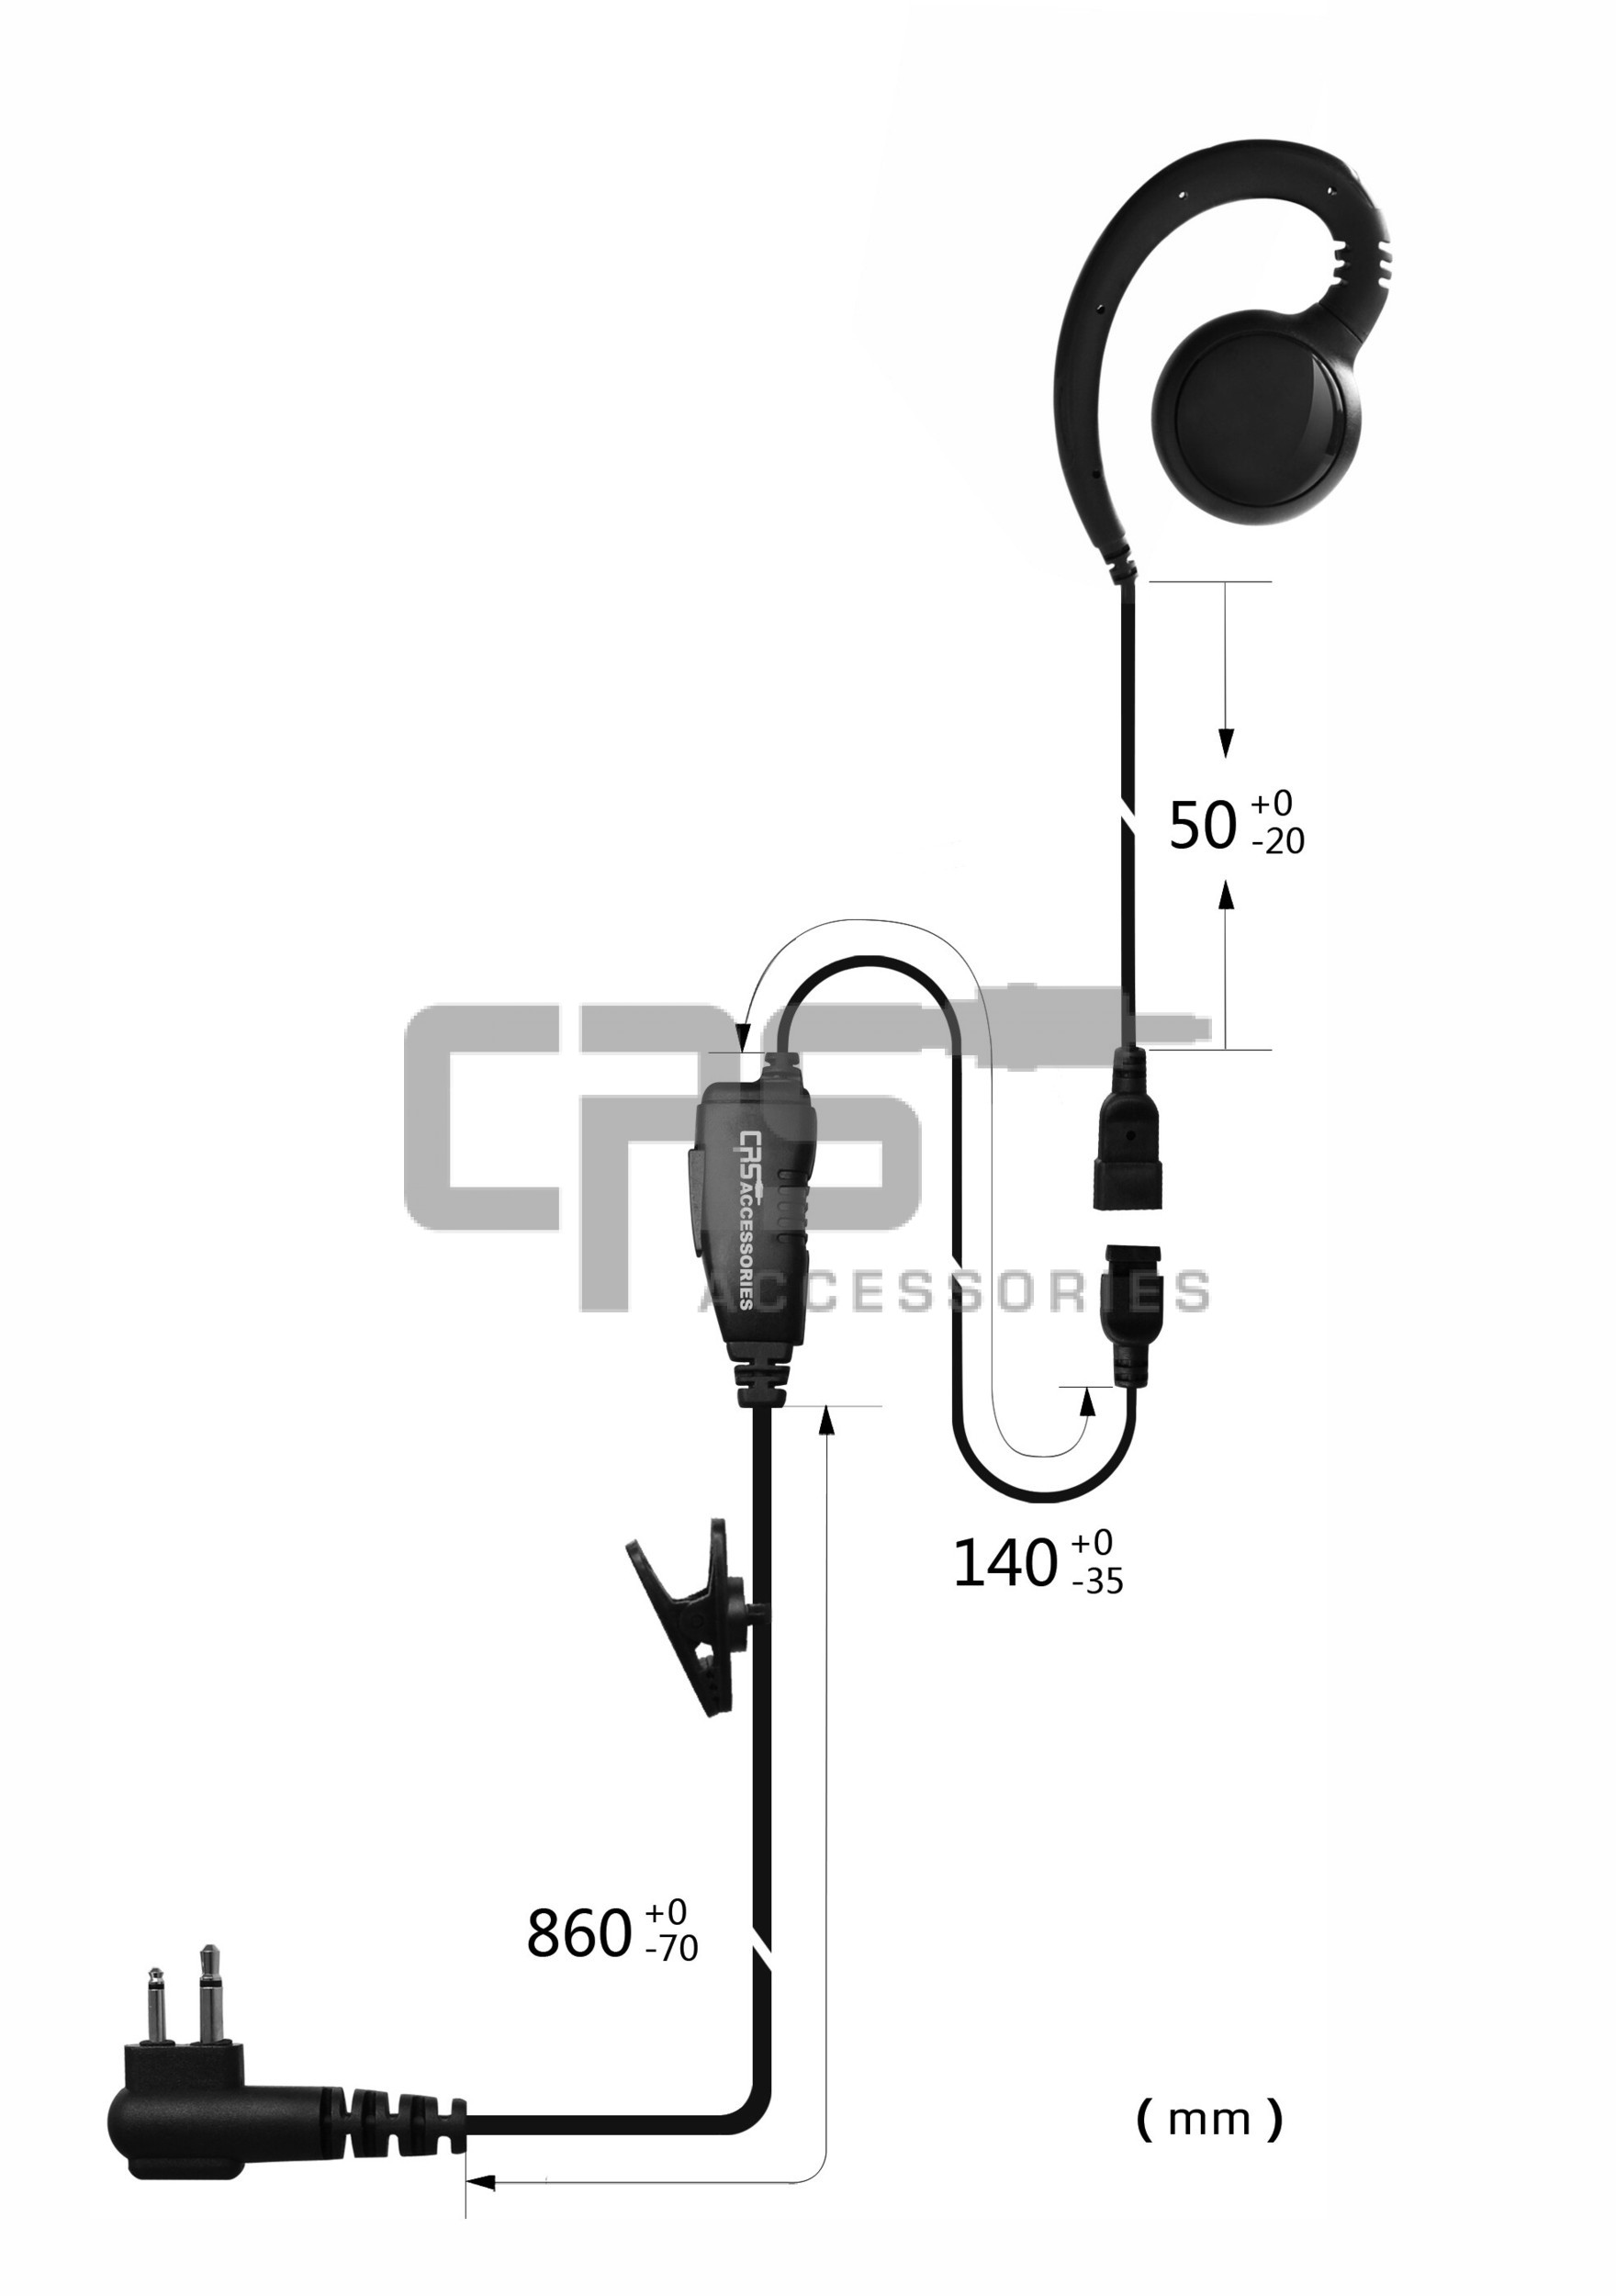 CRS 1 Wire GHOOK earpiece with Inline PTT/MIC to suit Motorola DP2000 series